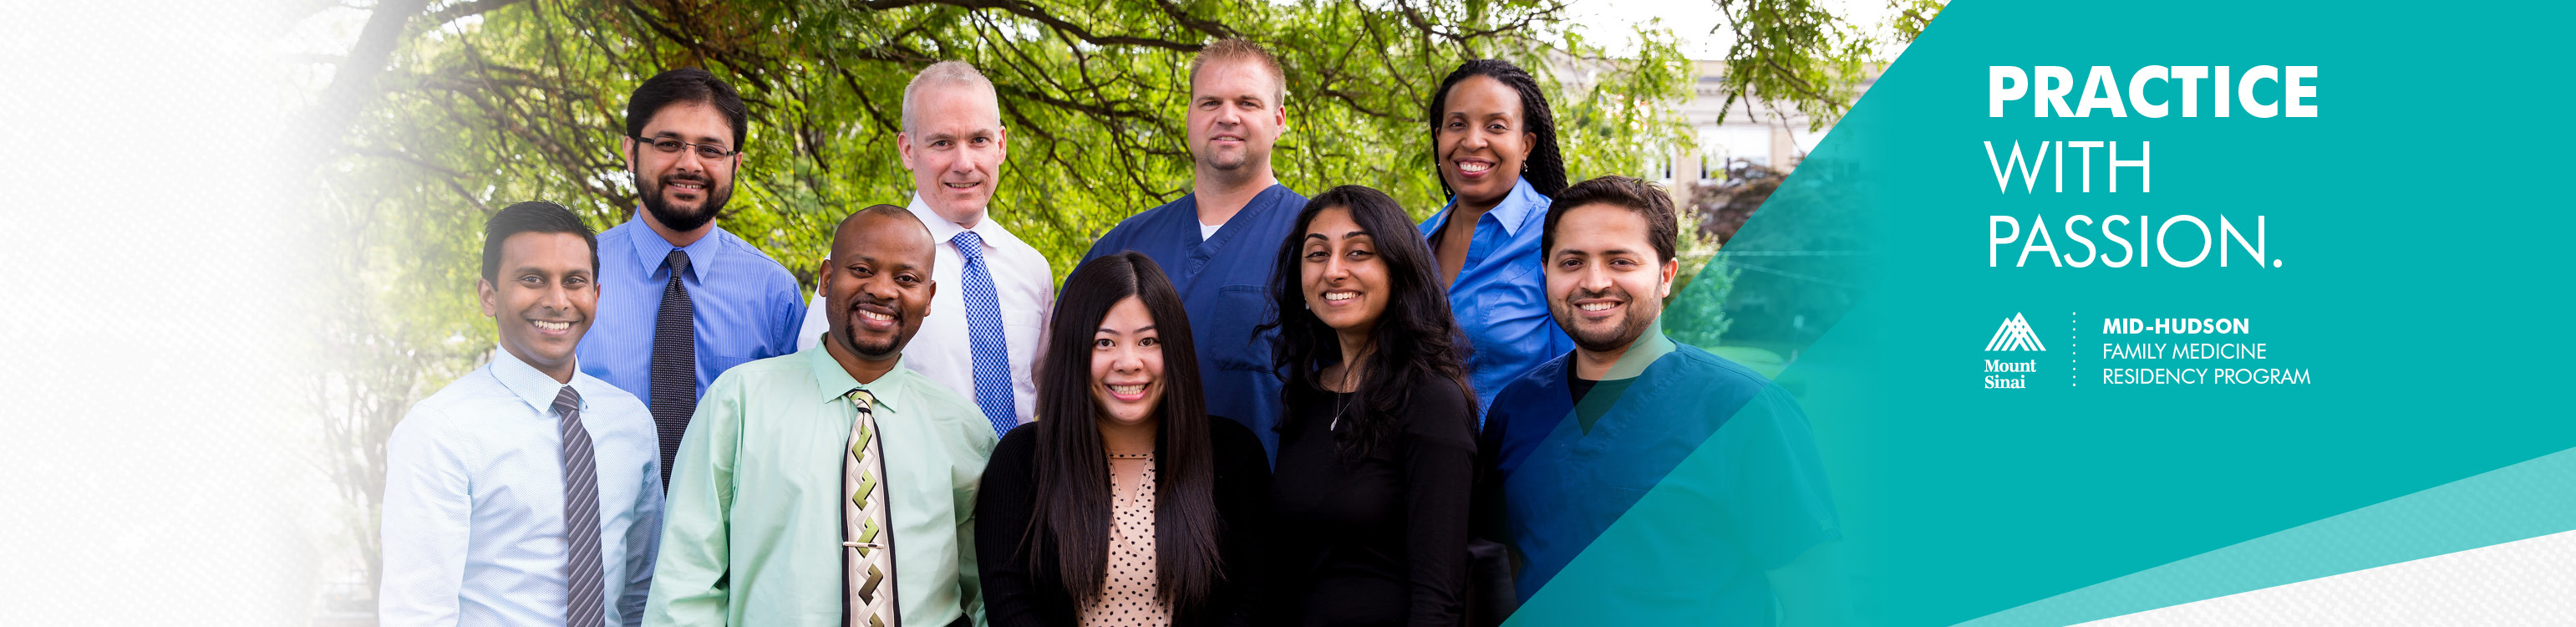 Mid-Hudson Family Medicine Residency Program | The Institute